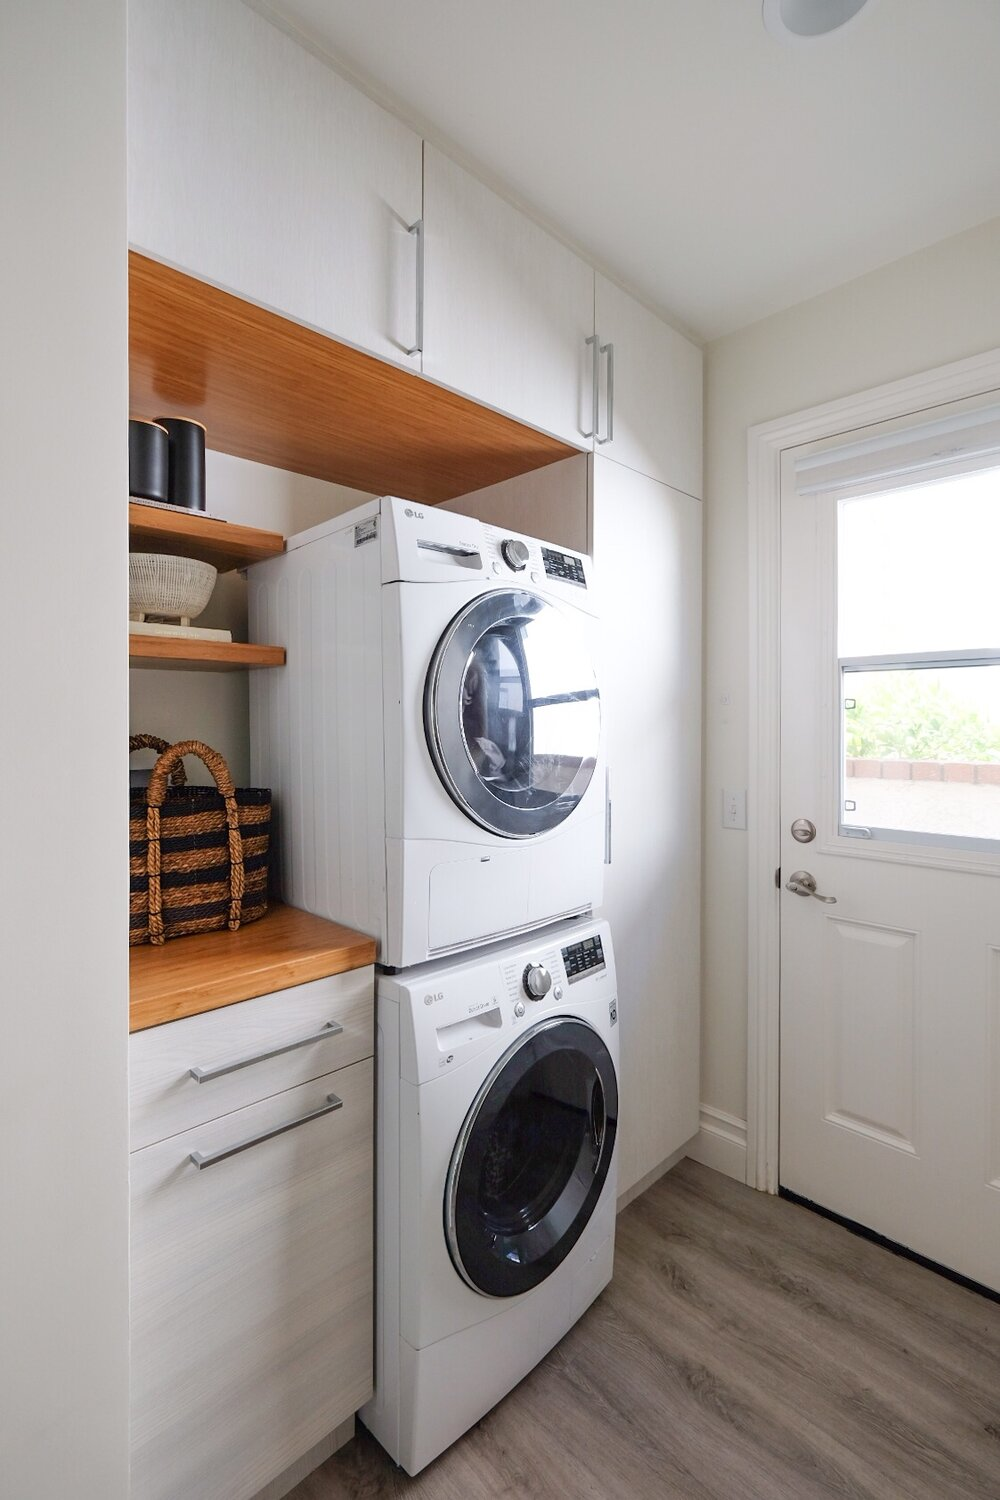 OUR SMALL SPACE LAUNDRY ROOM // — Me and Mr. Jones